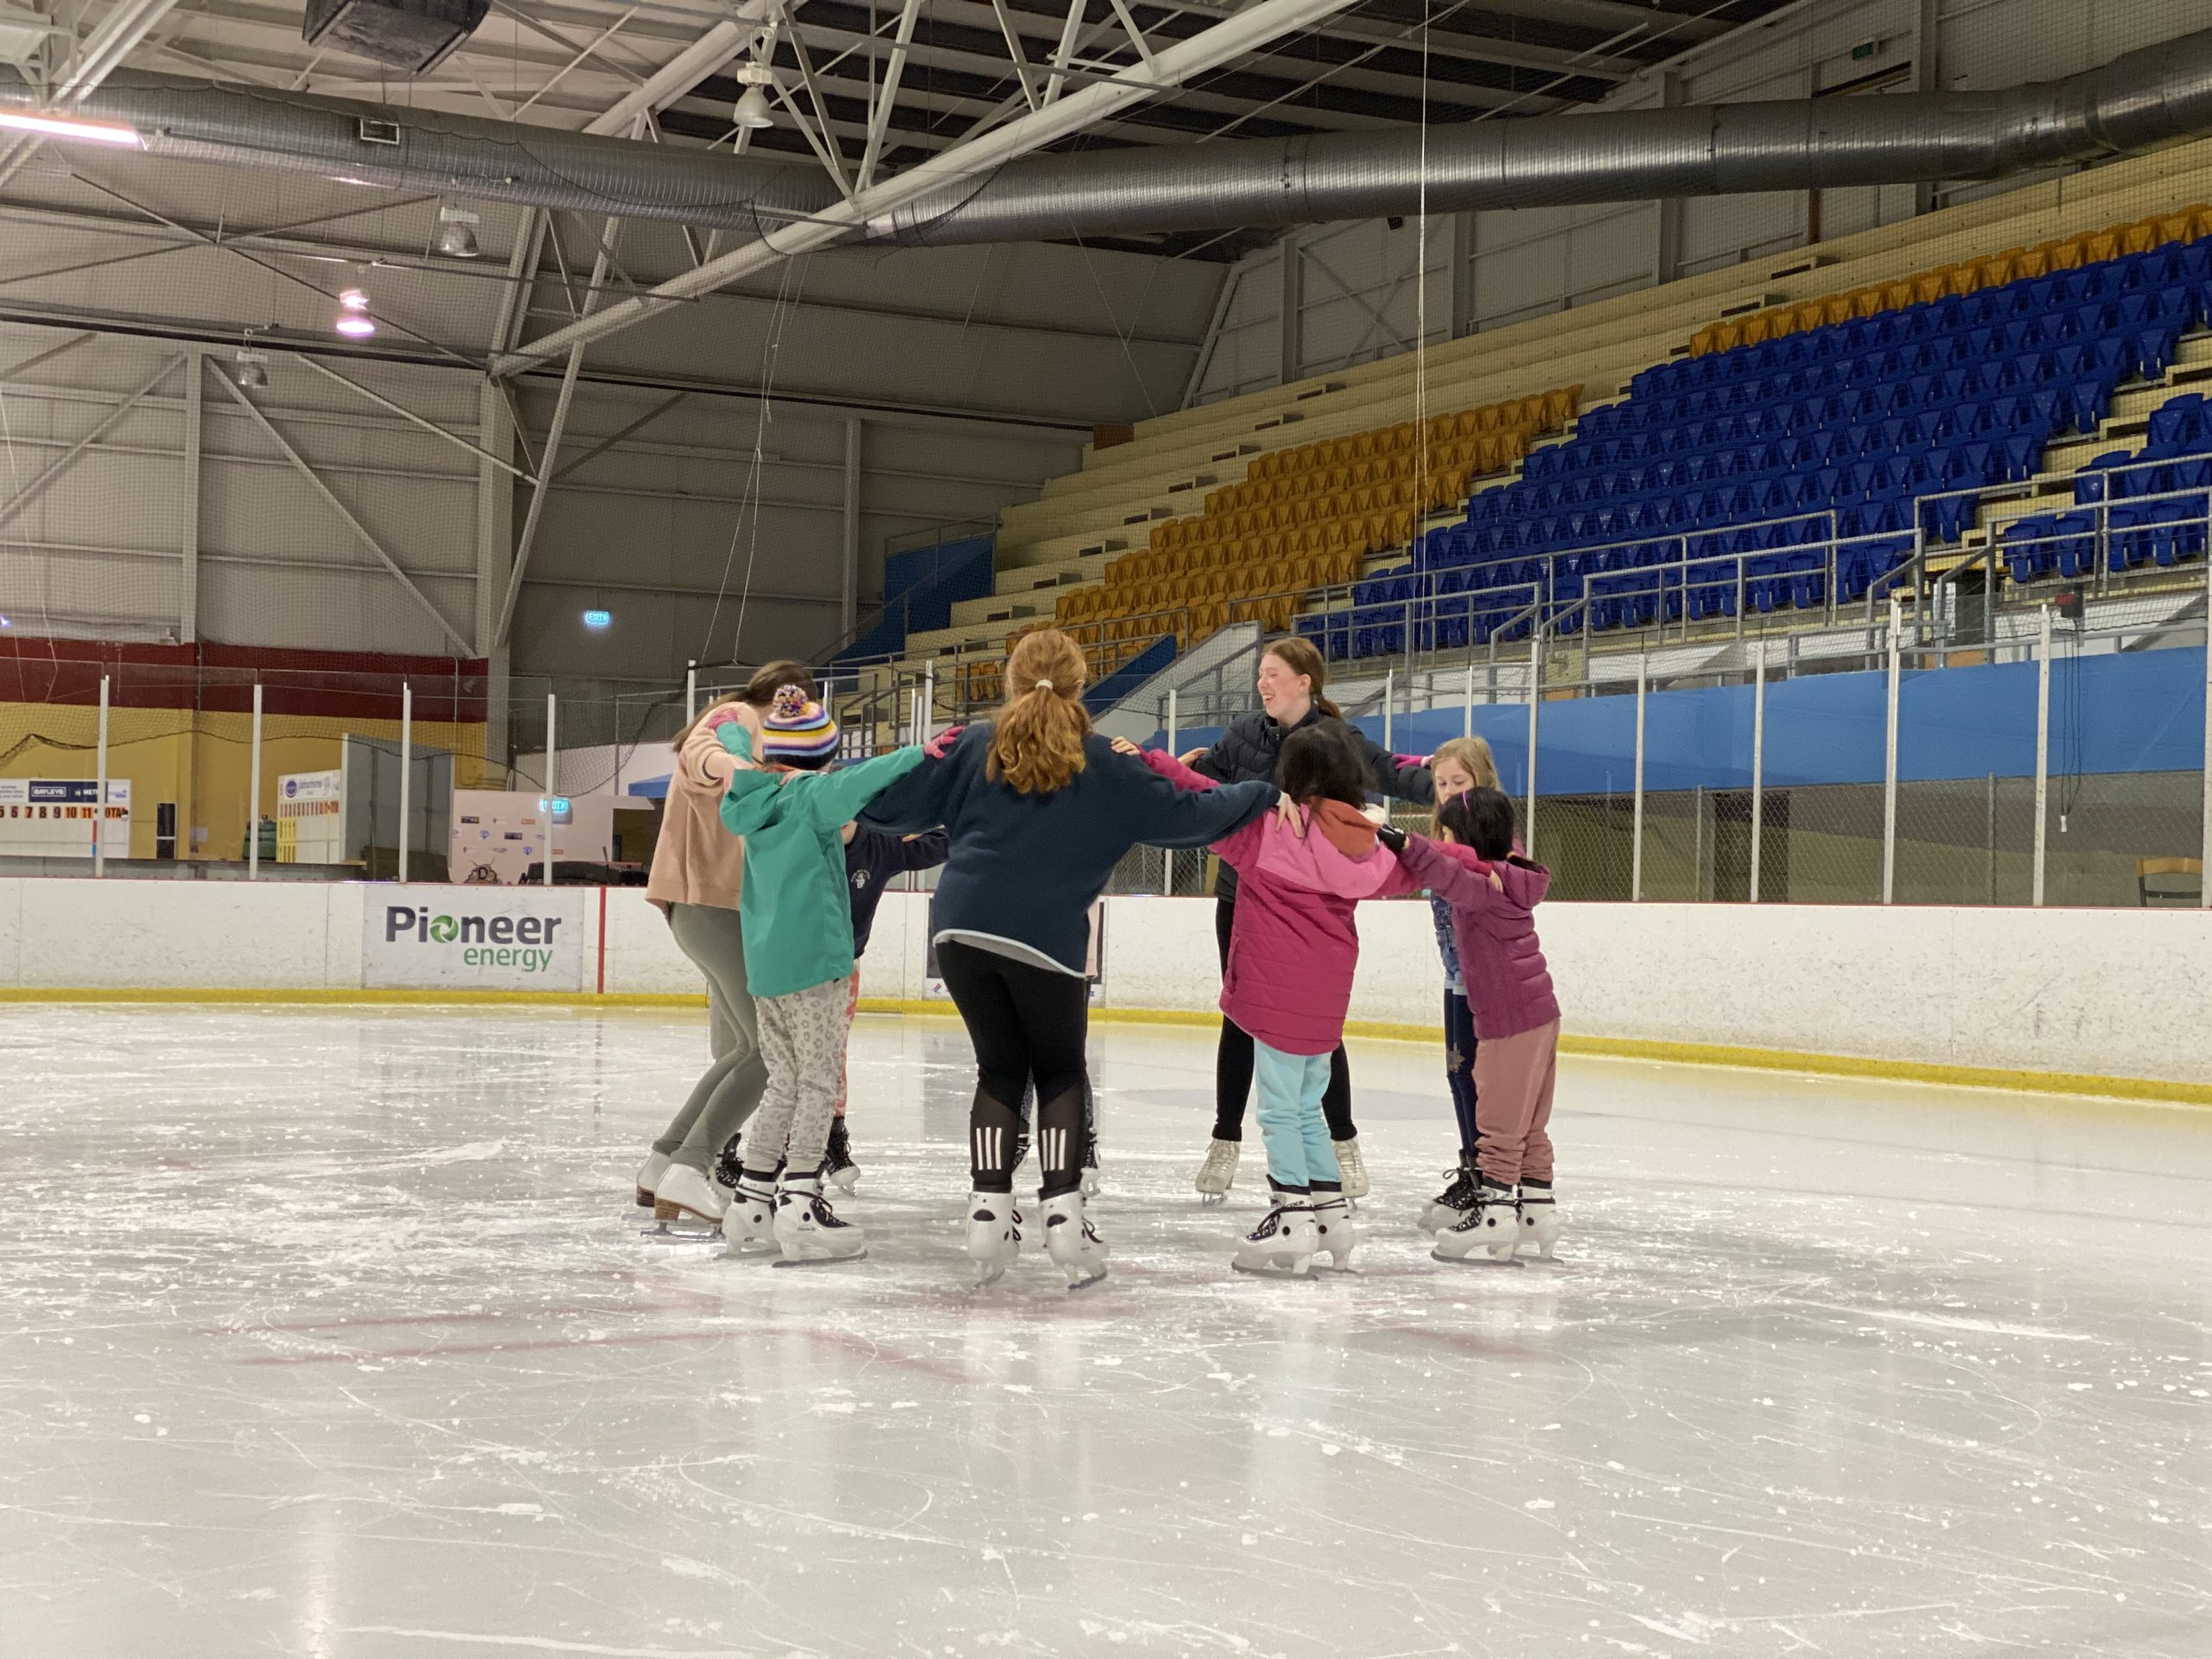 Are you still looking for a School Holiday activity for your child? Chill out, the Dunedin Ice Stadium has you covered: